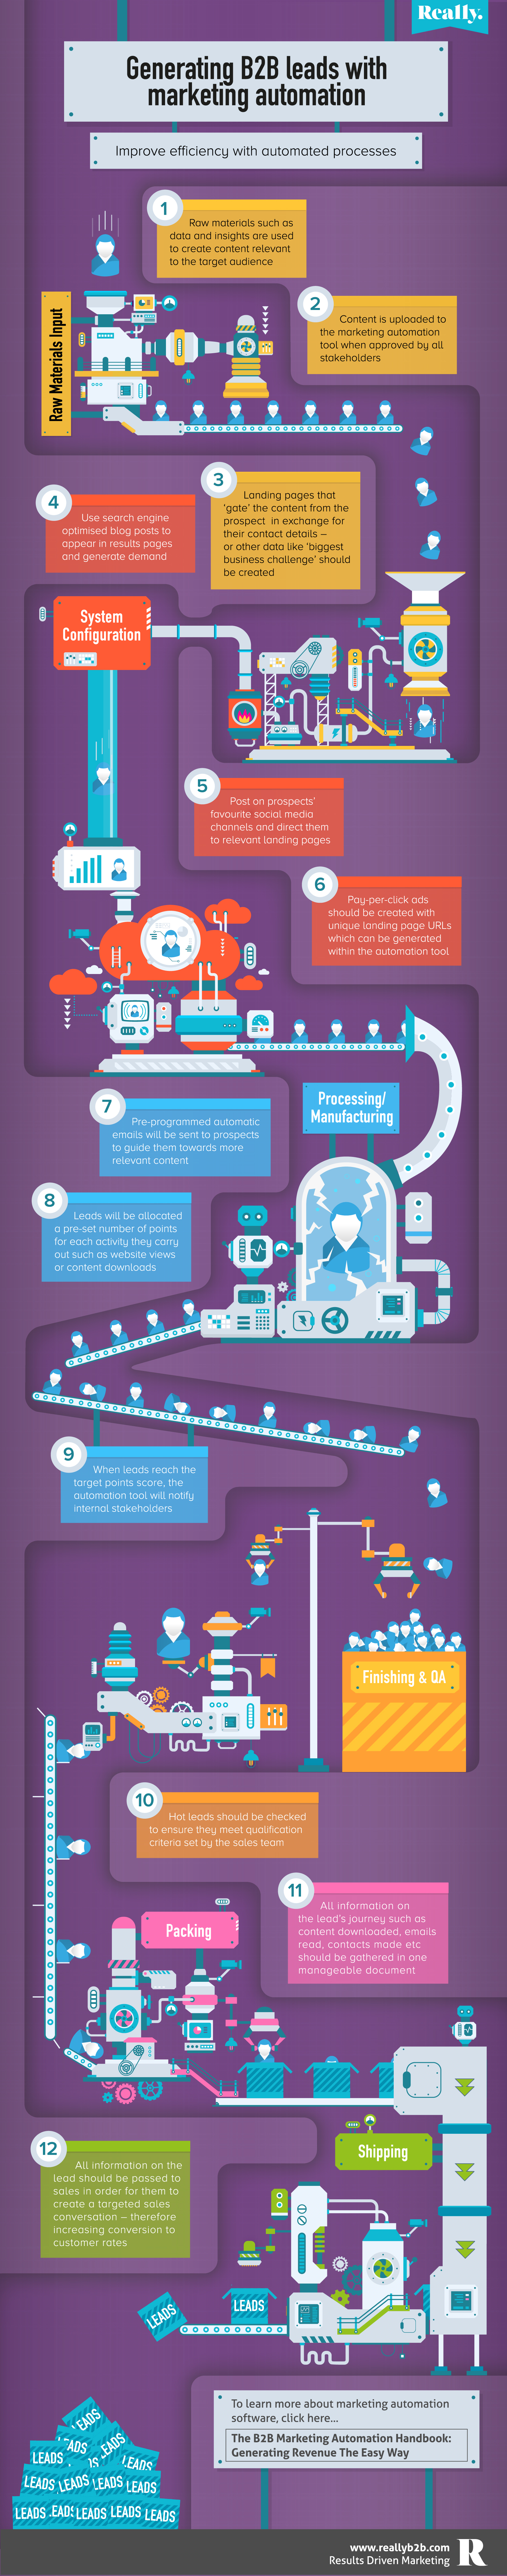 B2B Marketing Automation Infographic2